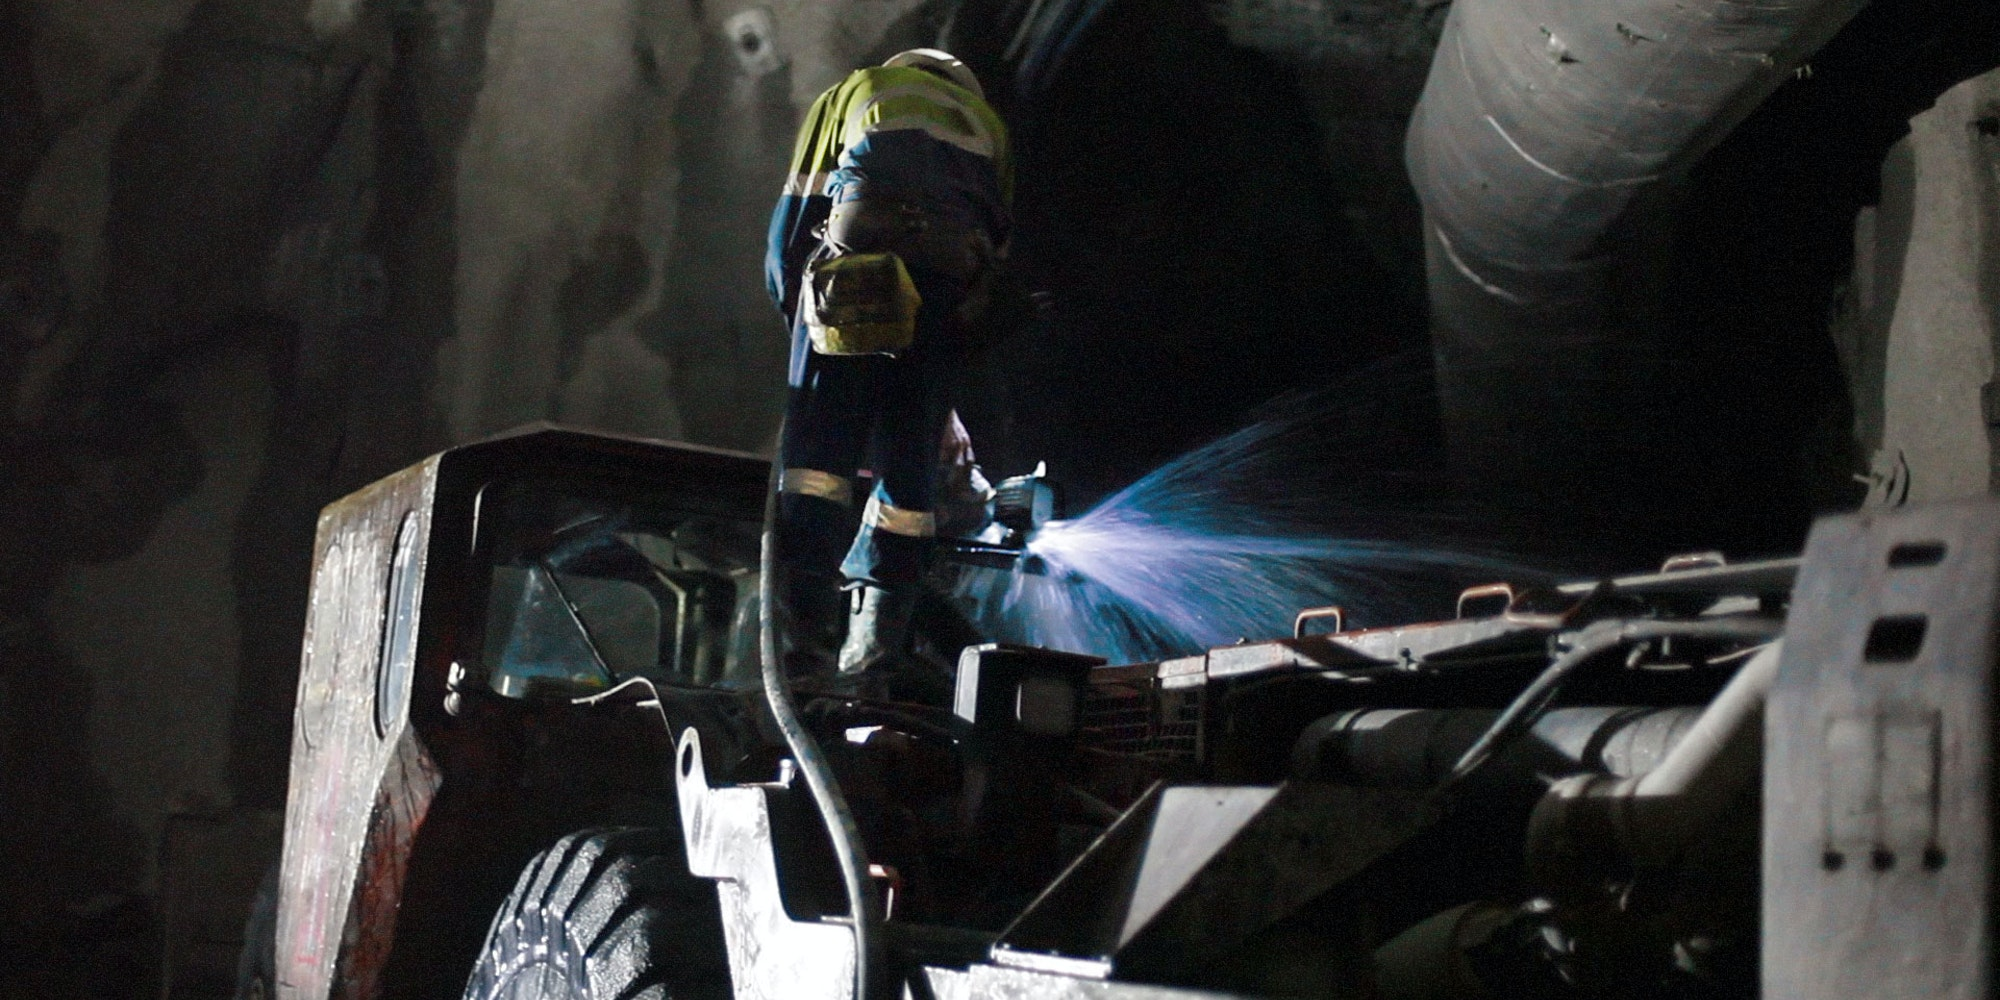 CPUG Series LED Work Light in application, installed on an underground excavator and high-pressure washed by a mine site personnel